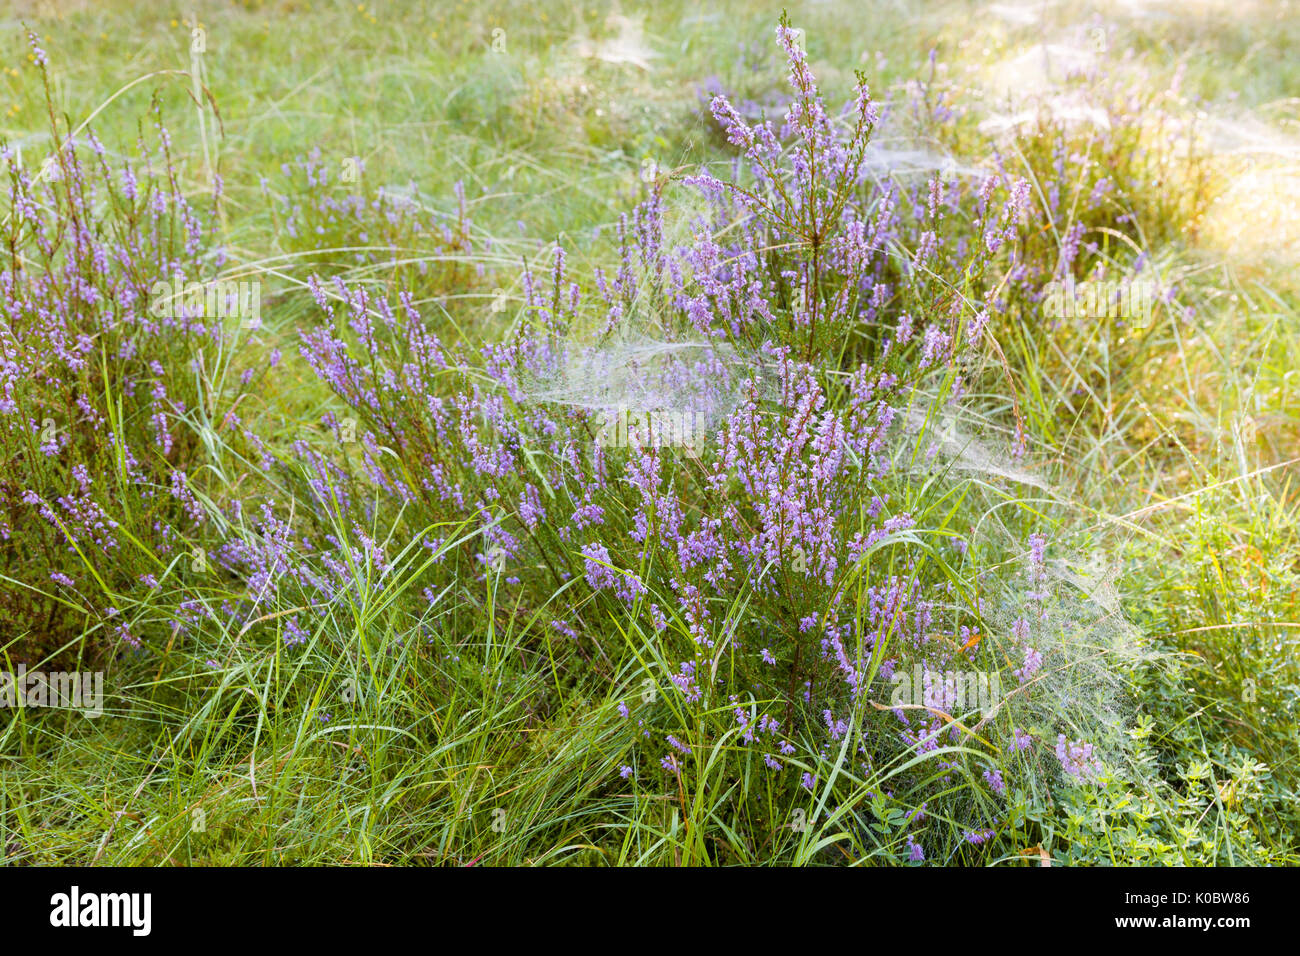 Beautiful rays of sunshine lighting up plenty of spider webs covering purple heather (Calluna vulgaris) or common heather  Model Release: No.  Property Release: No. - Stock Image